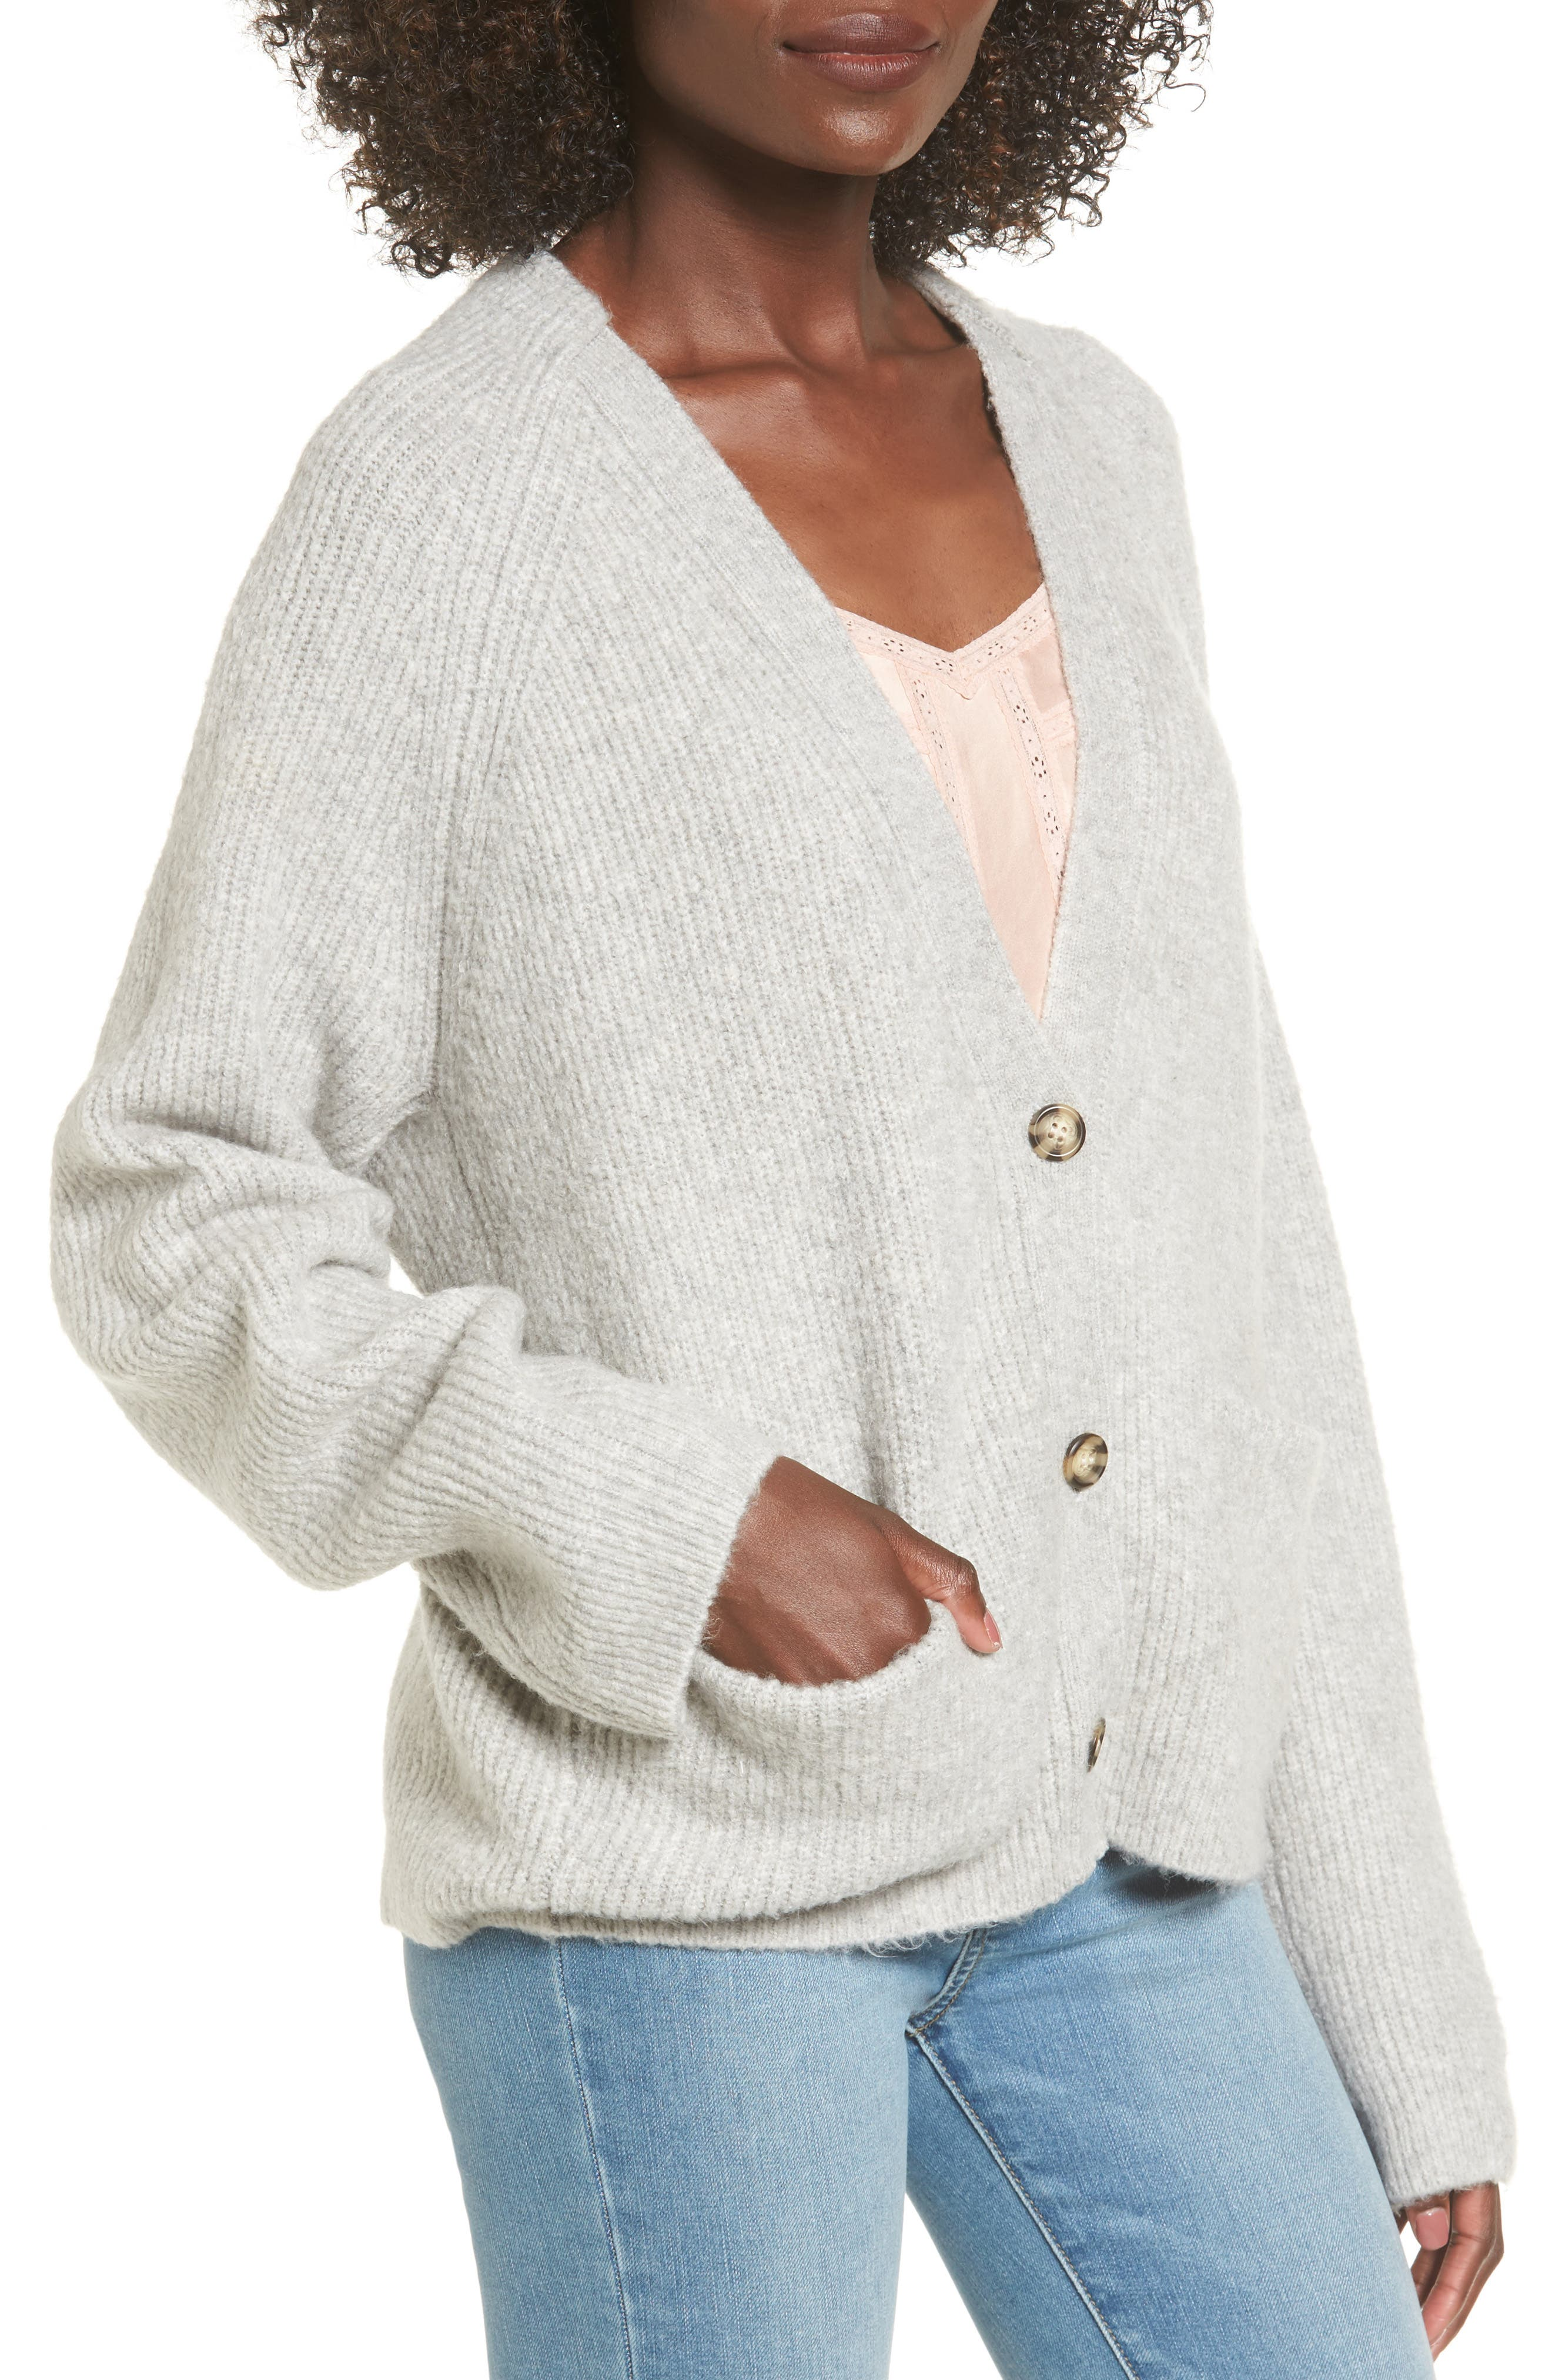 Cardigan Sweater,                             Alternate thumbnail 10, color,